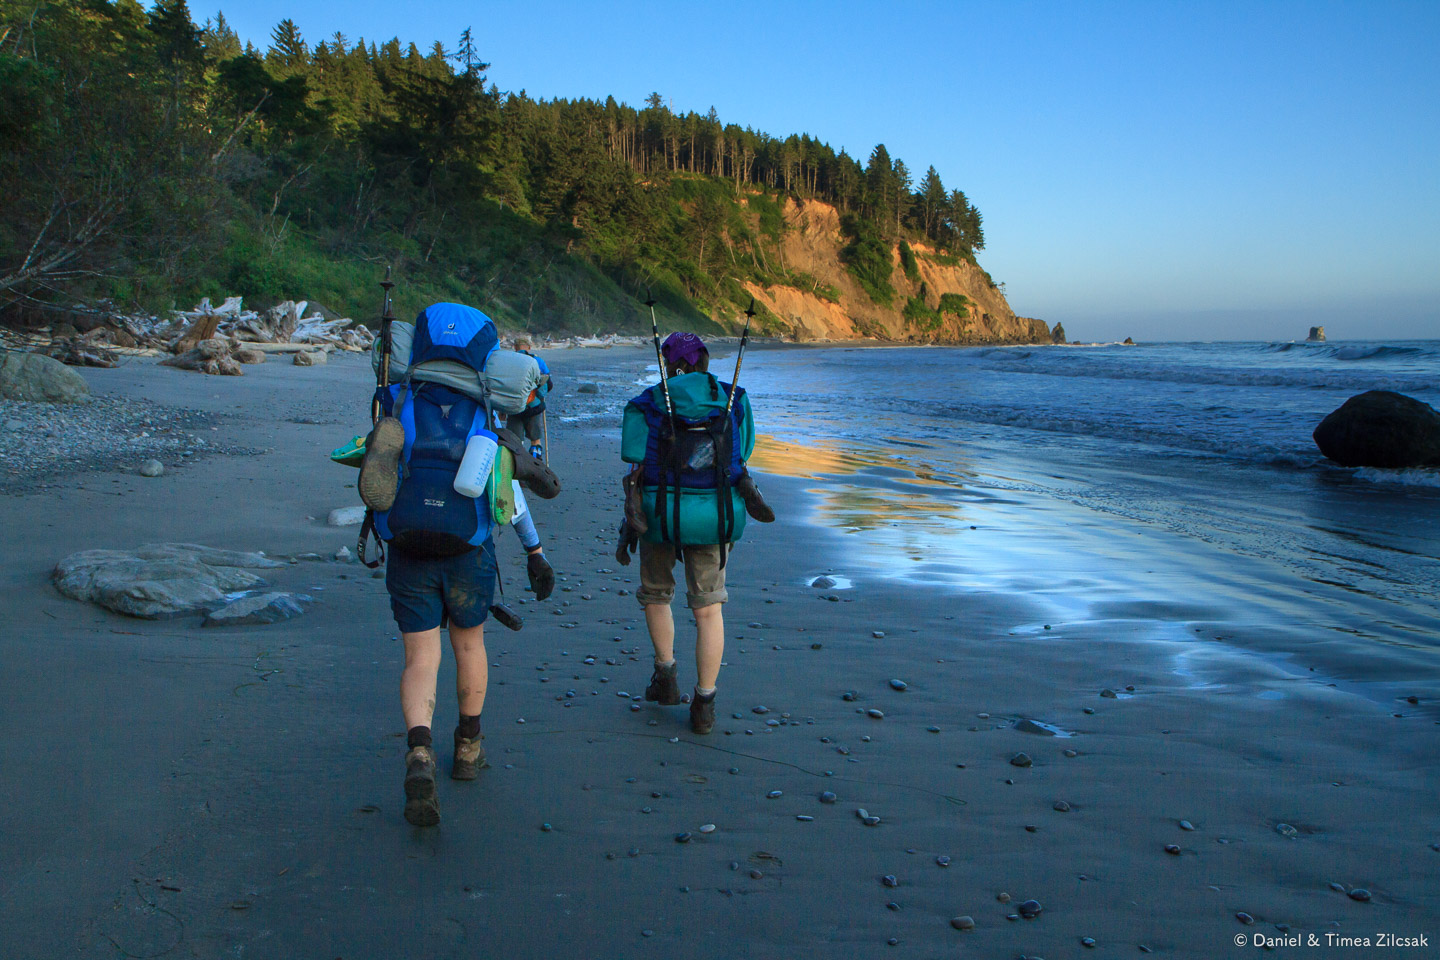 Hungry backpackers looking for a safe campsite at Jefferson Cove on the South Coast Wilderness Trail